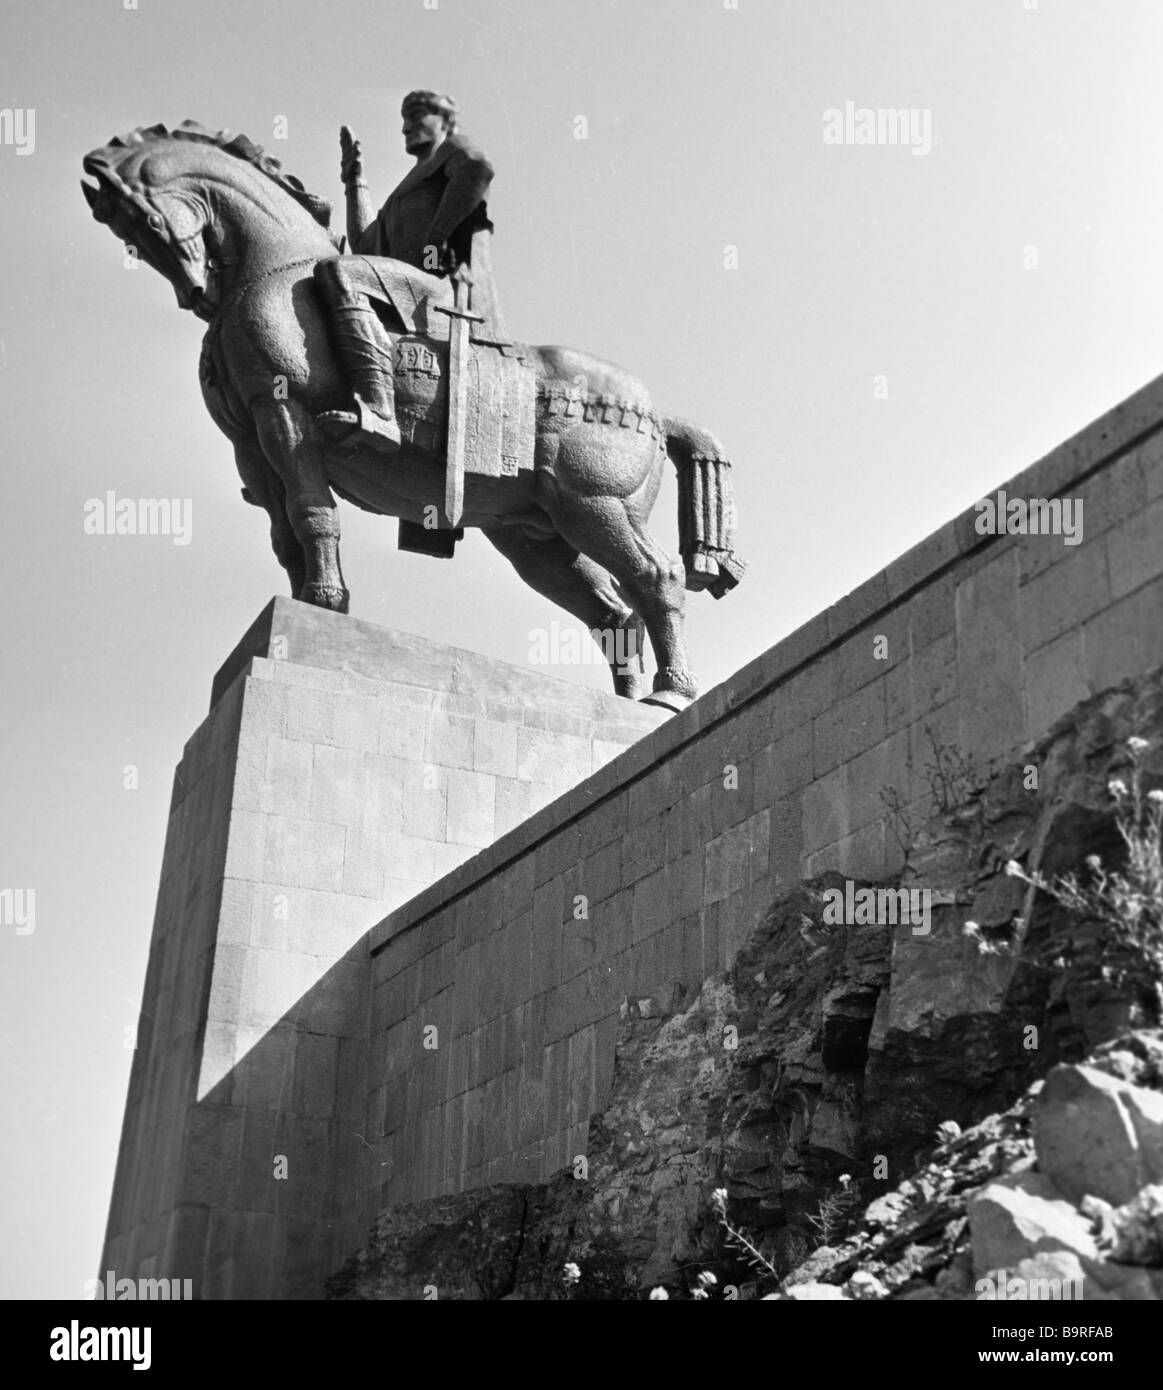 A monument to the founder of Tbilisi Vakhtang Gorgasal - Stock Image